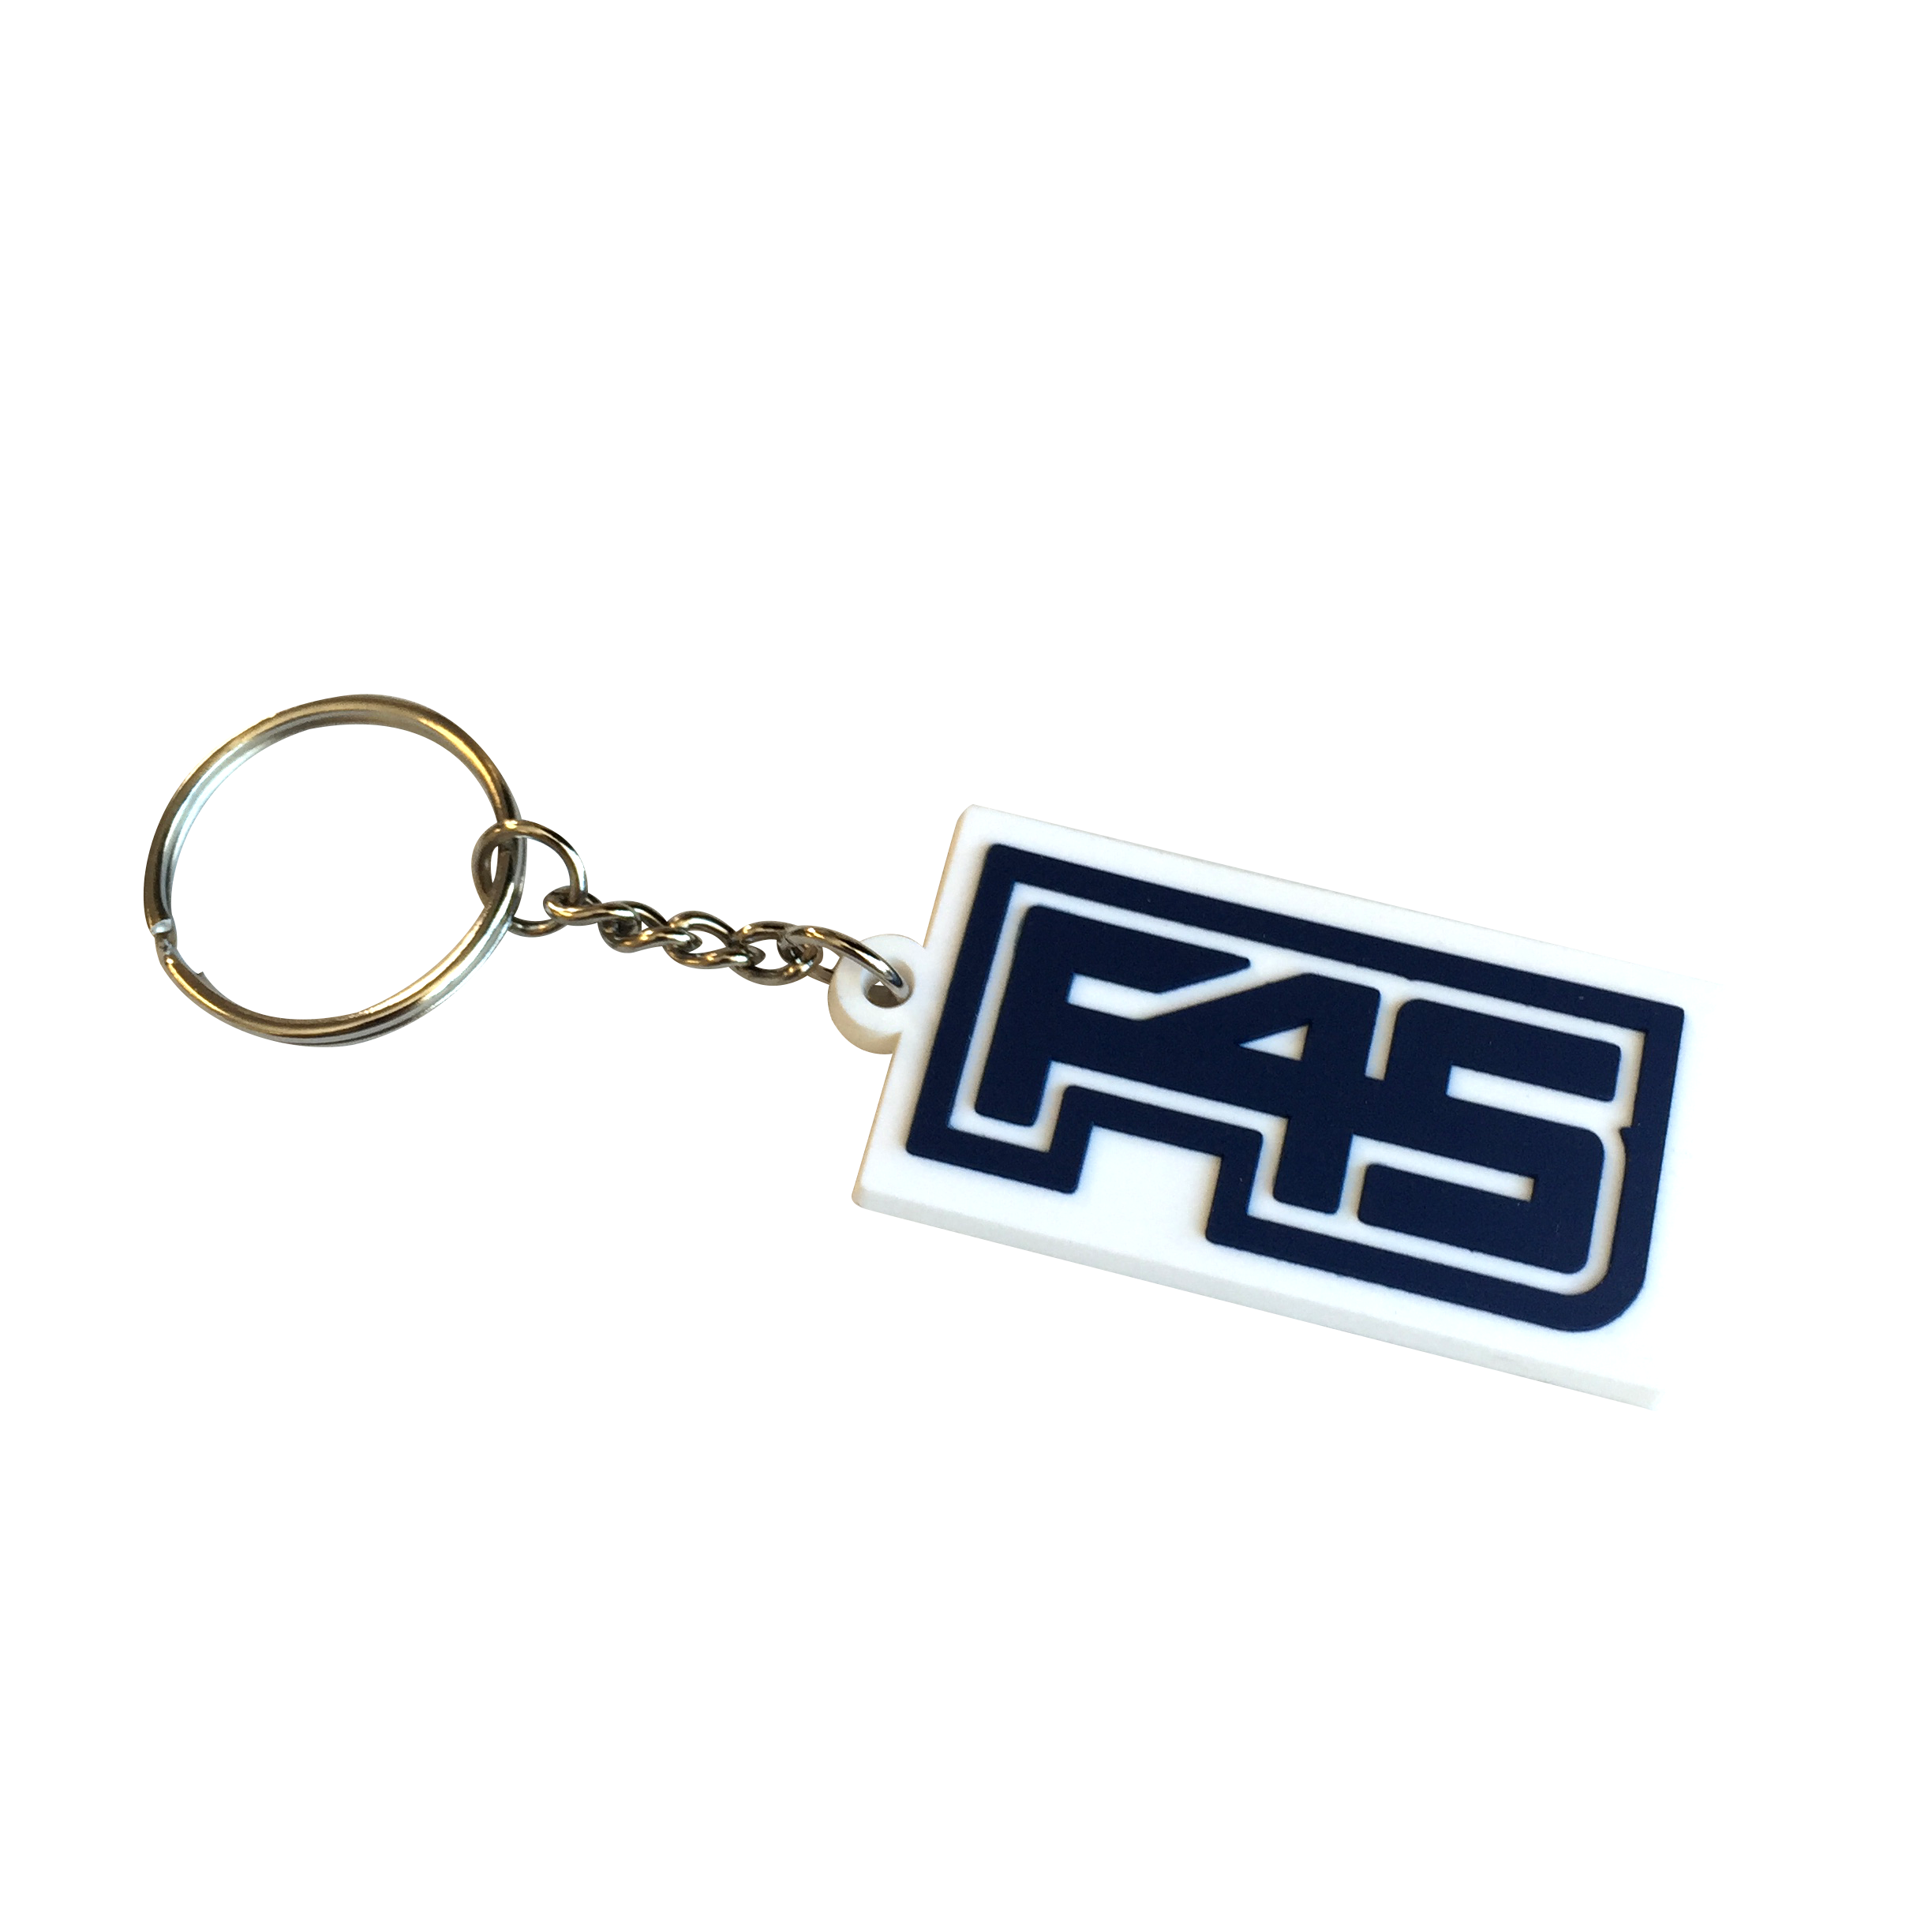 Custom rubber plastic keyrings no minimums tiesncuffs at ties n cuffs we now offer a great range of pvc keyrings alongside our metalworks our custom pvc keyring service allows you to create your own one off reheart Gallery